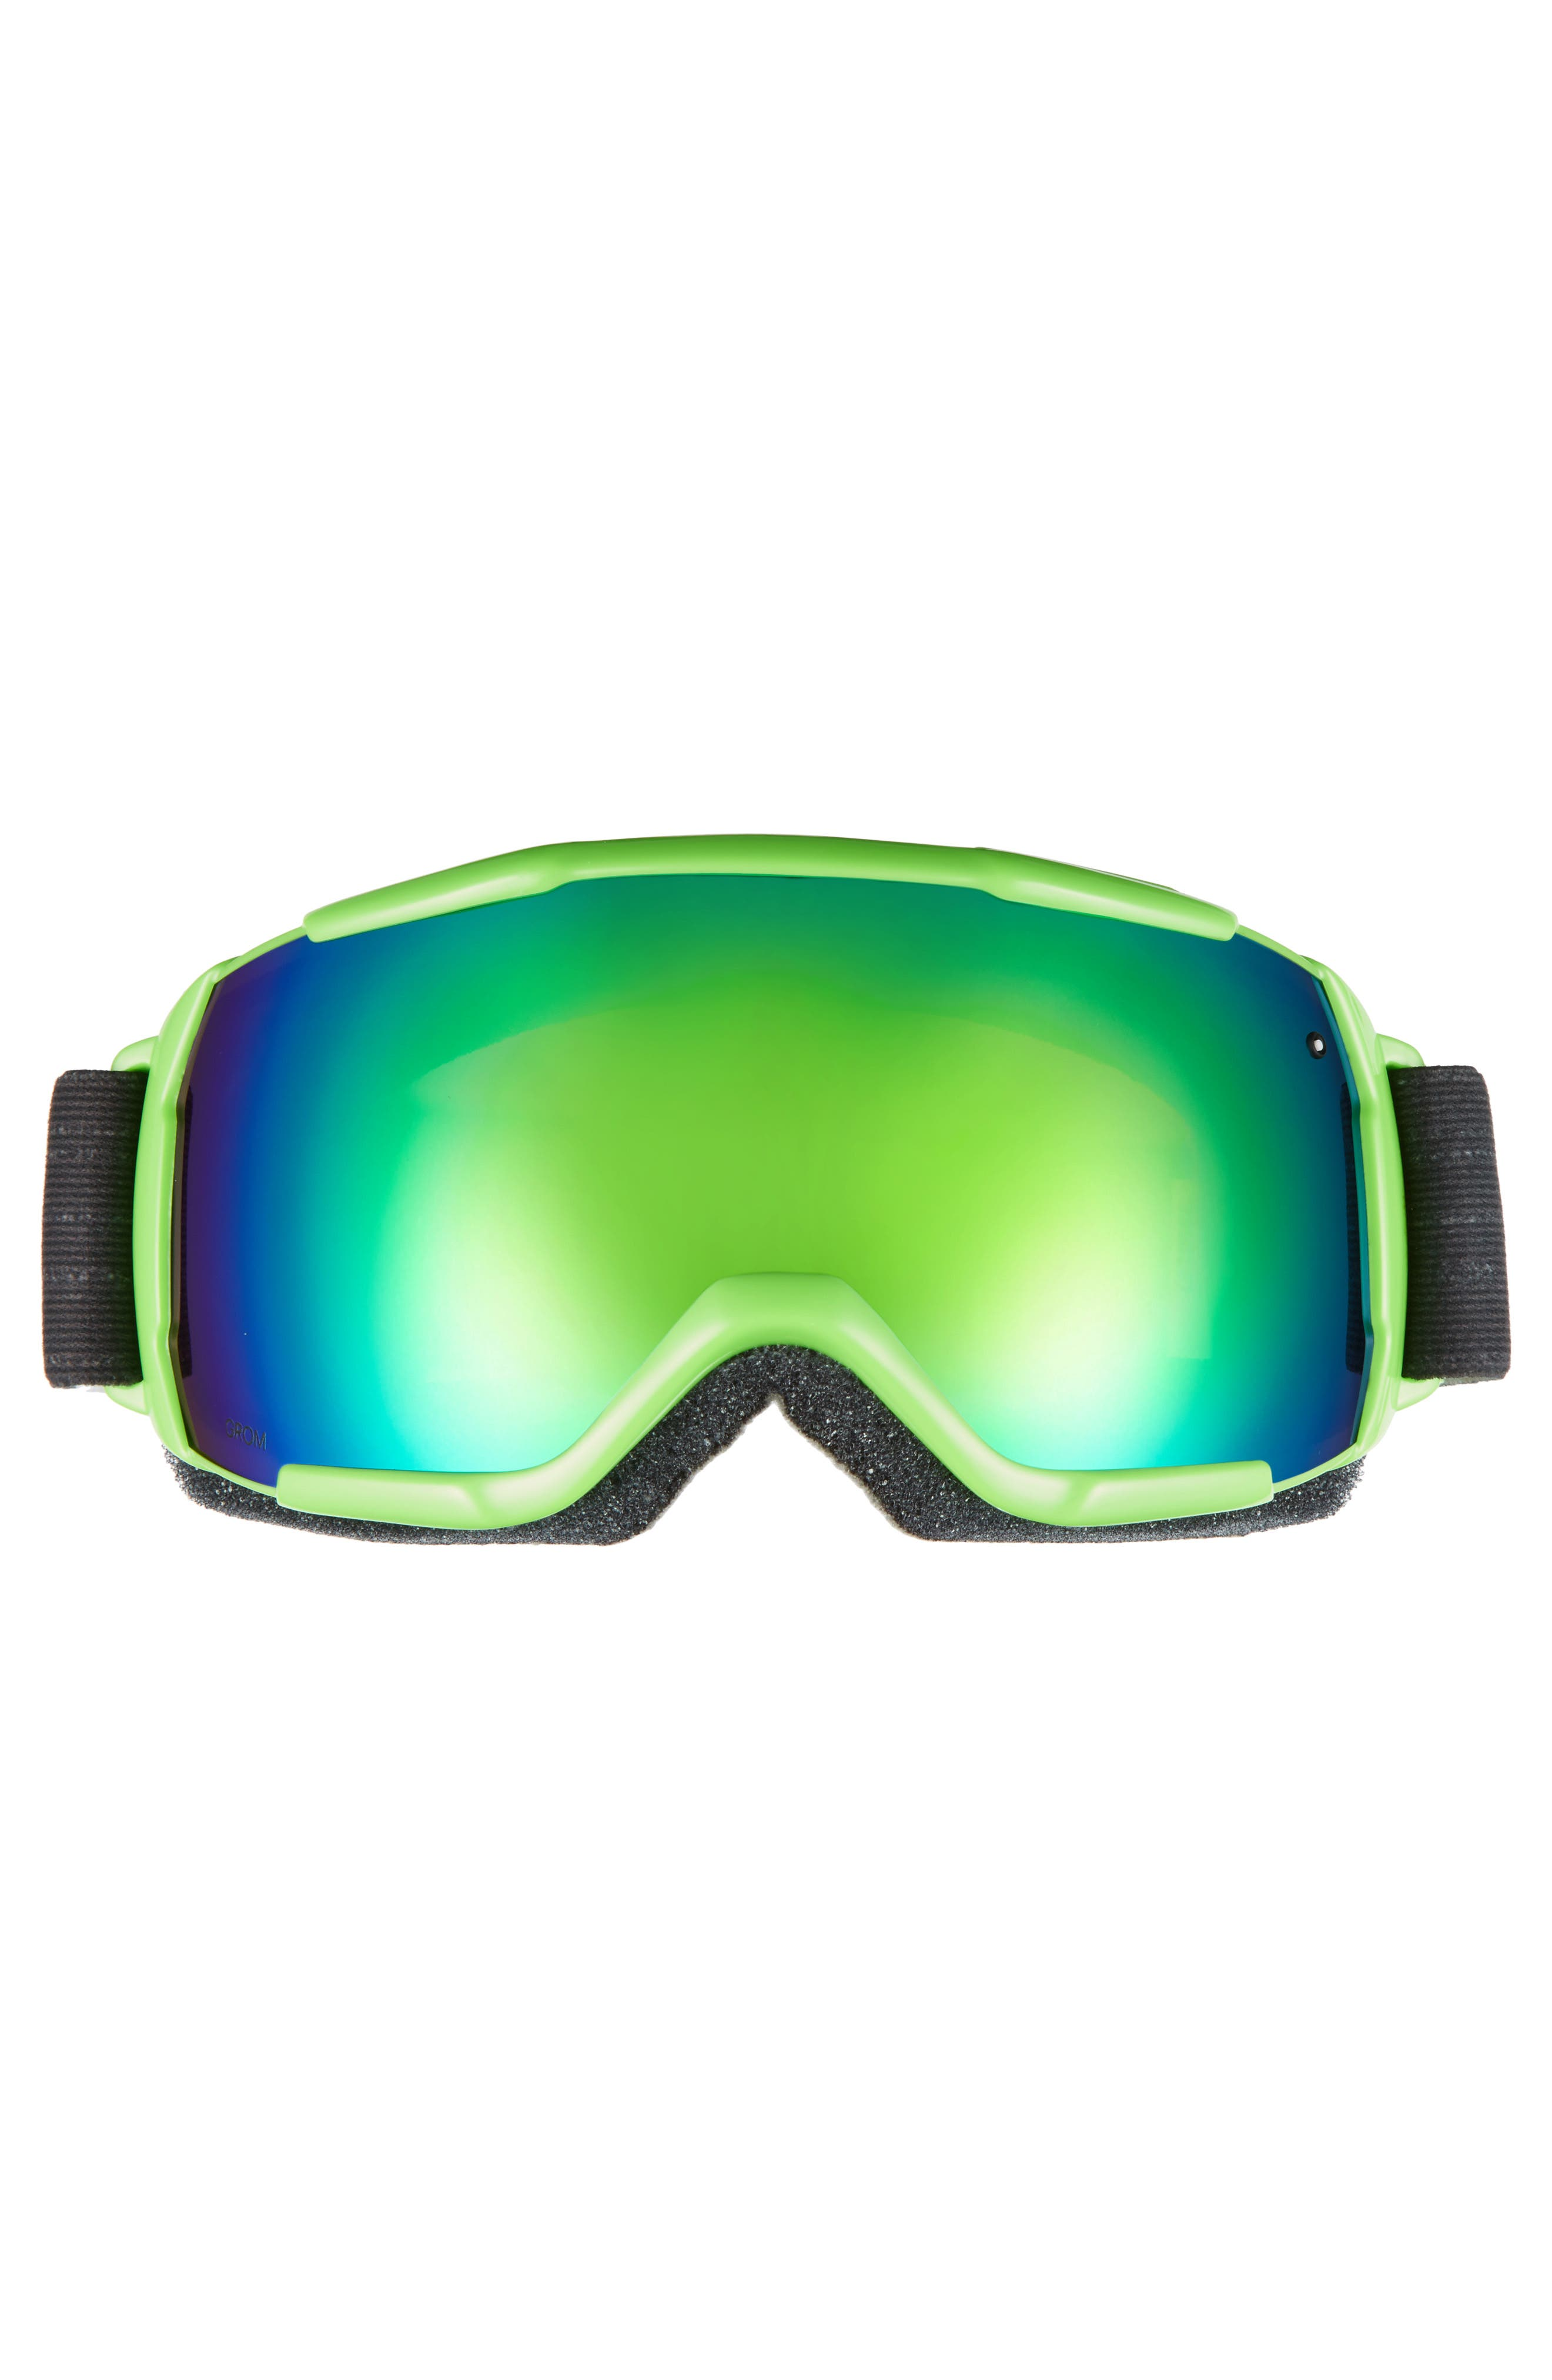 Grom Snow Goggles,                             Alternate thumbnail 2, color,                             Reactor Tracking/ Mirror